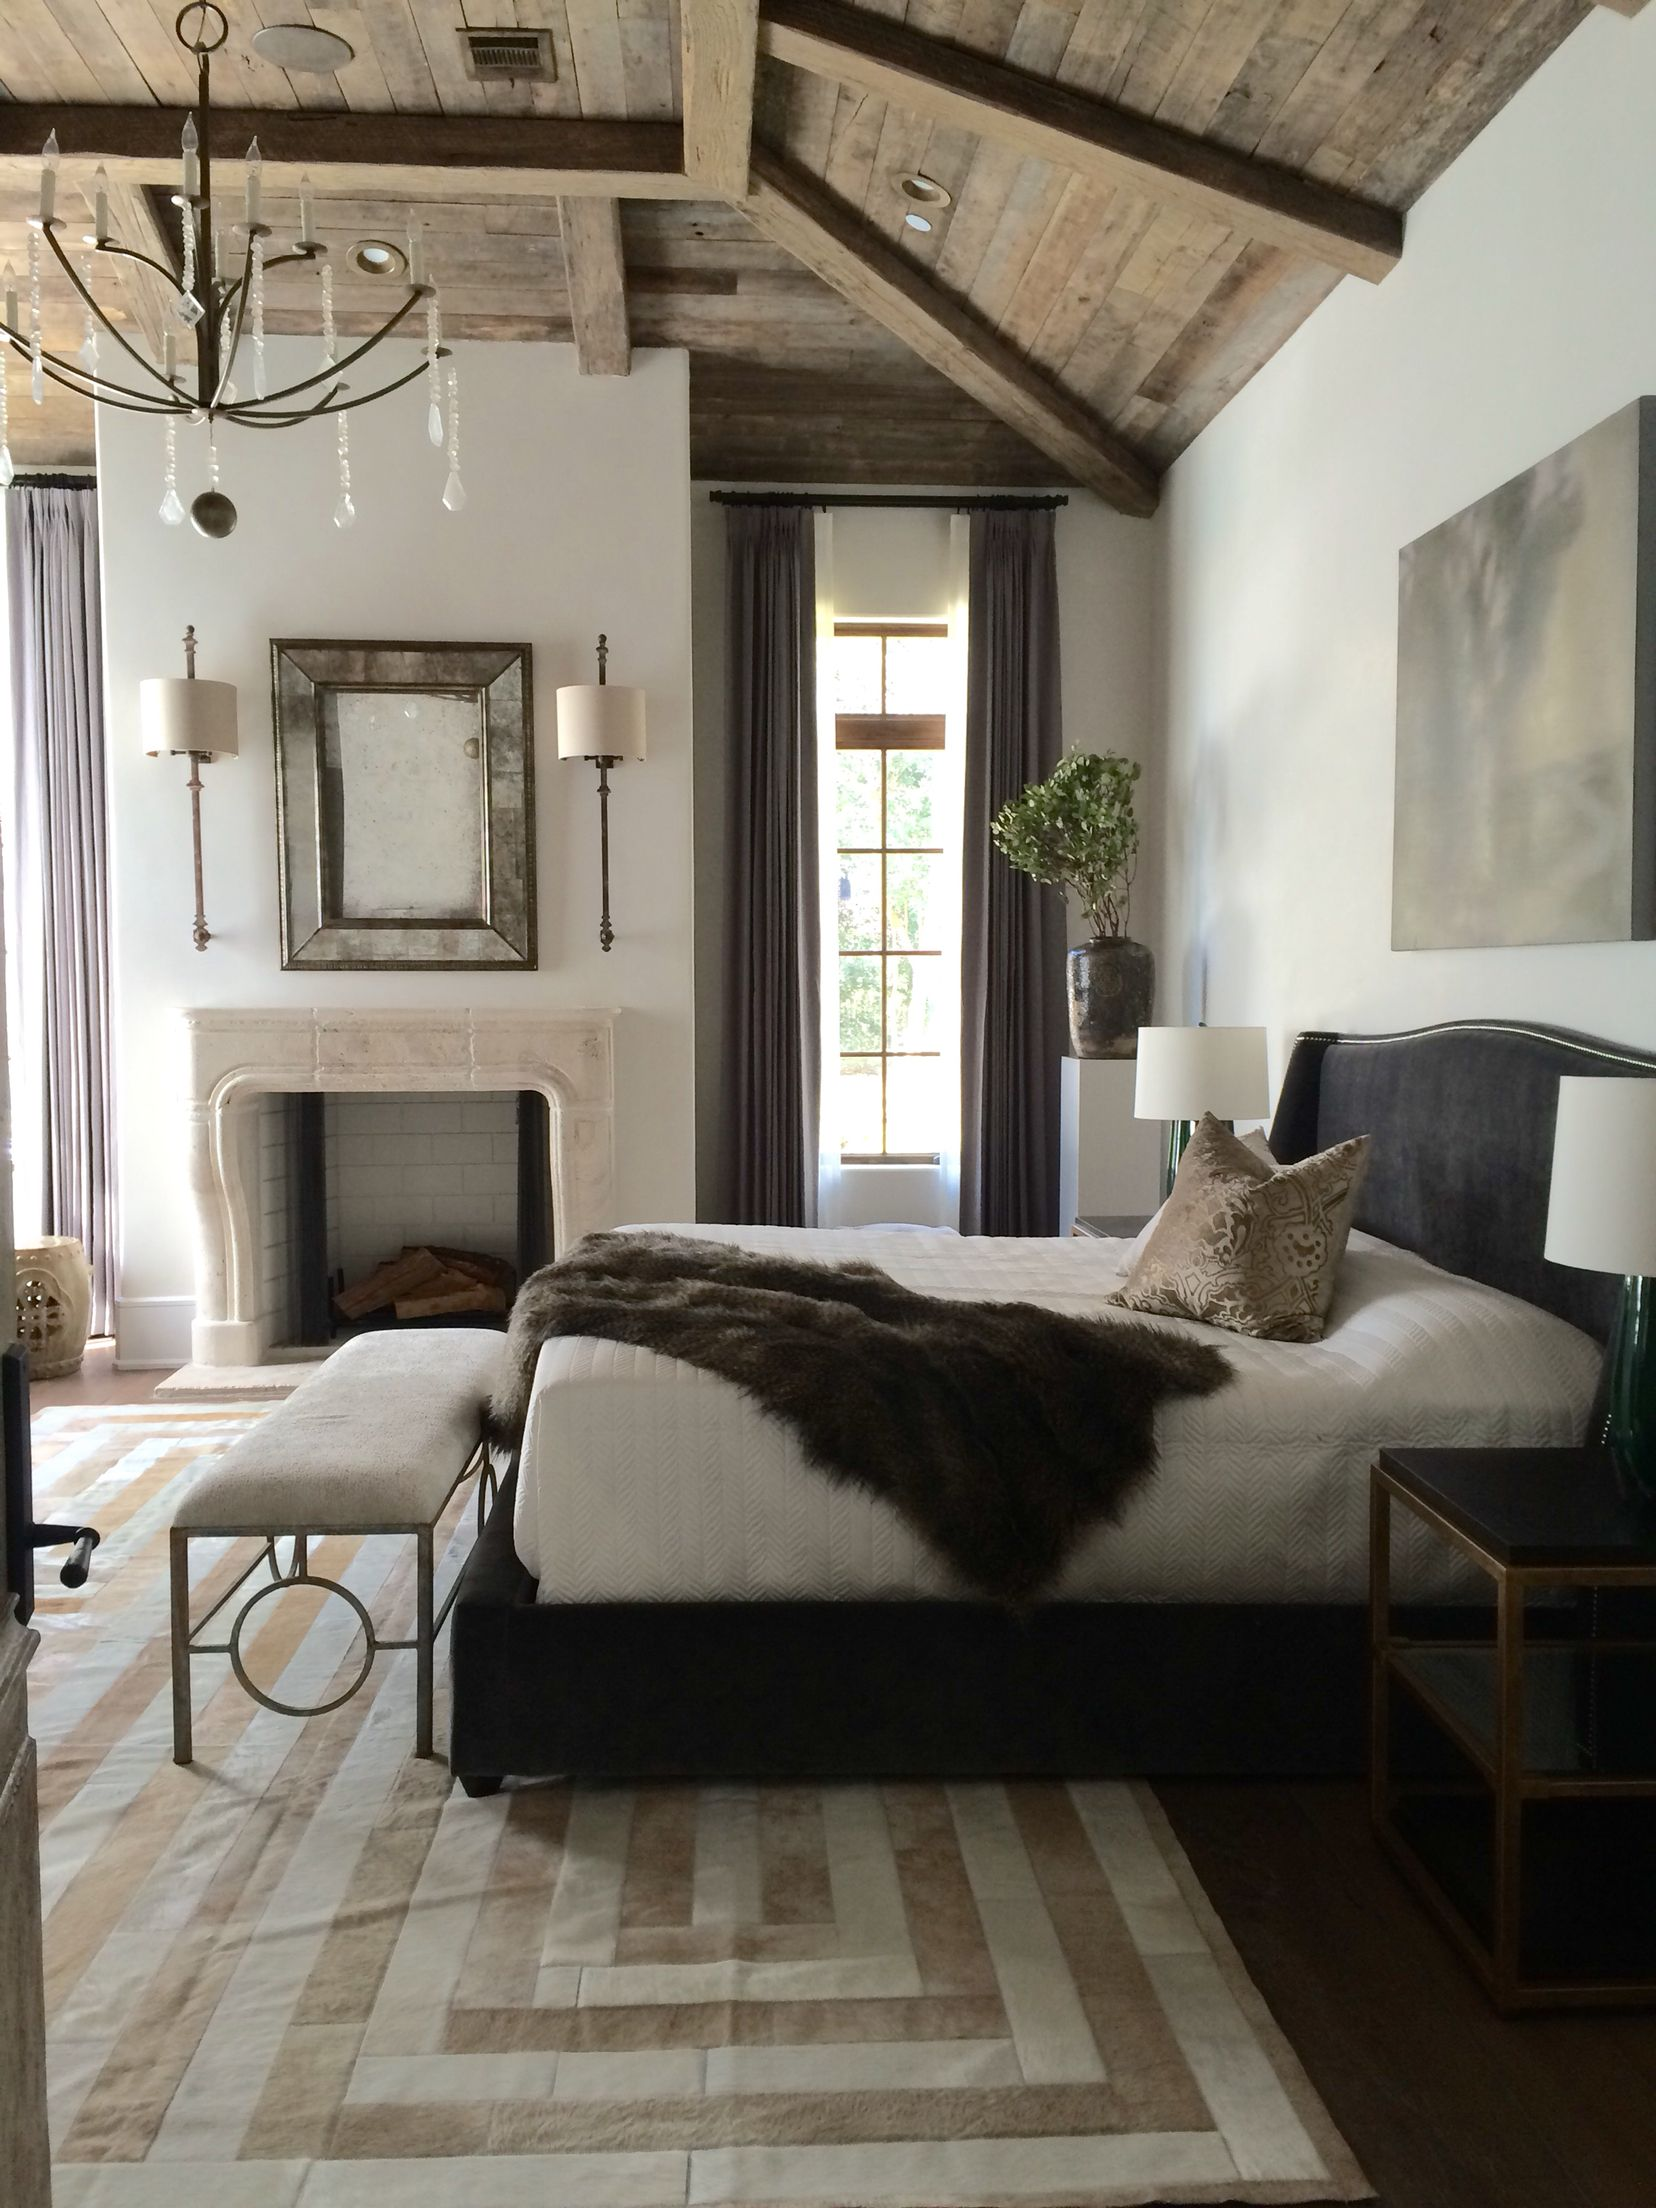 50 favorites for friday | bedrooms, chandeliers and real estate